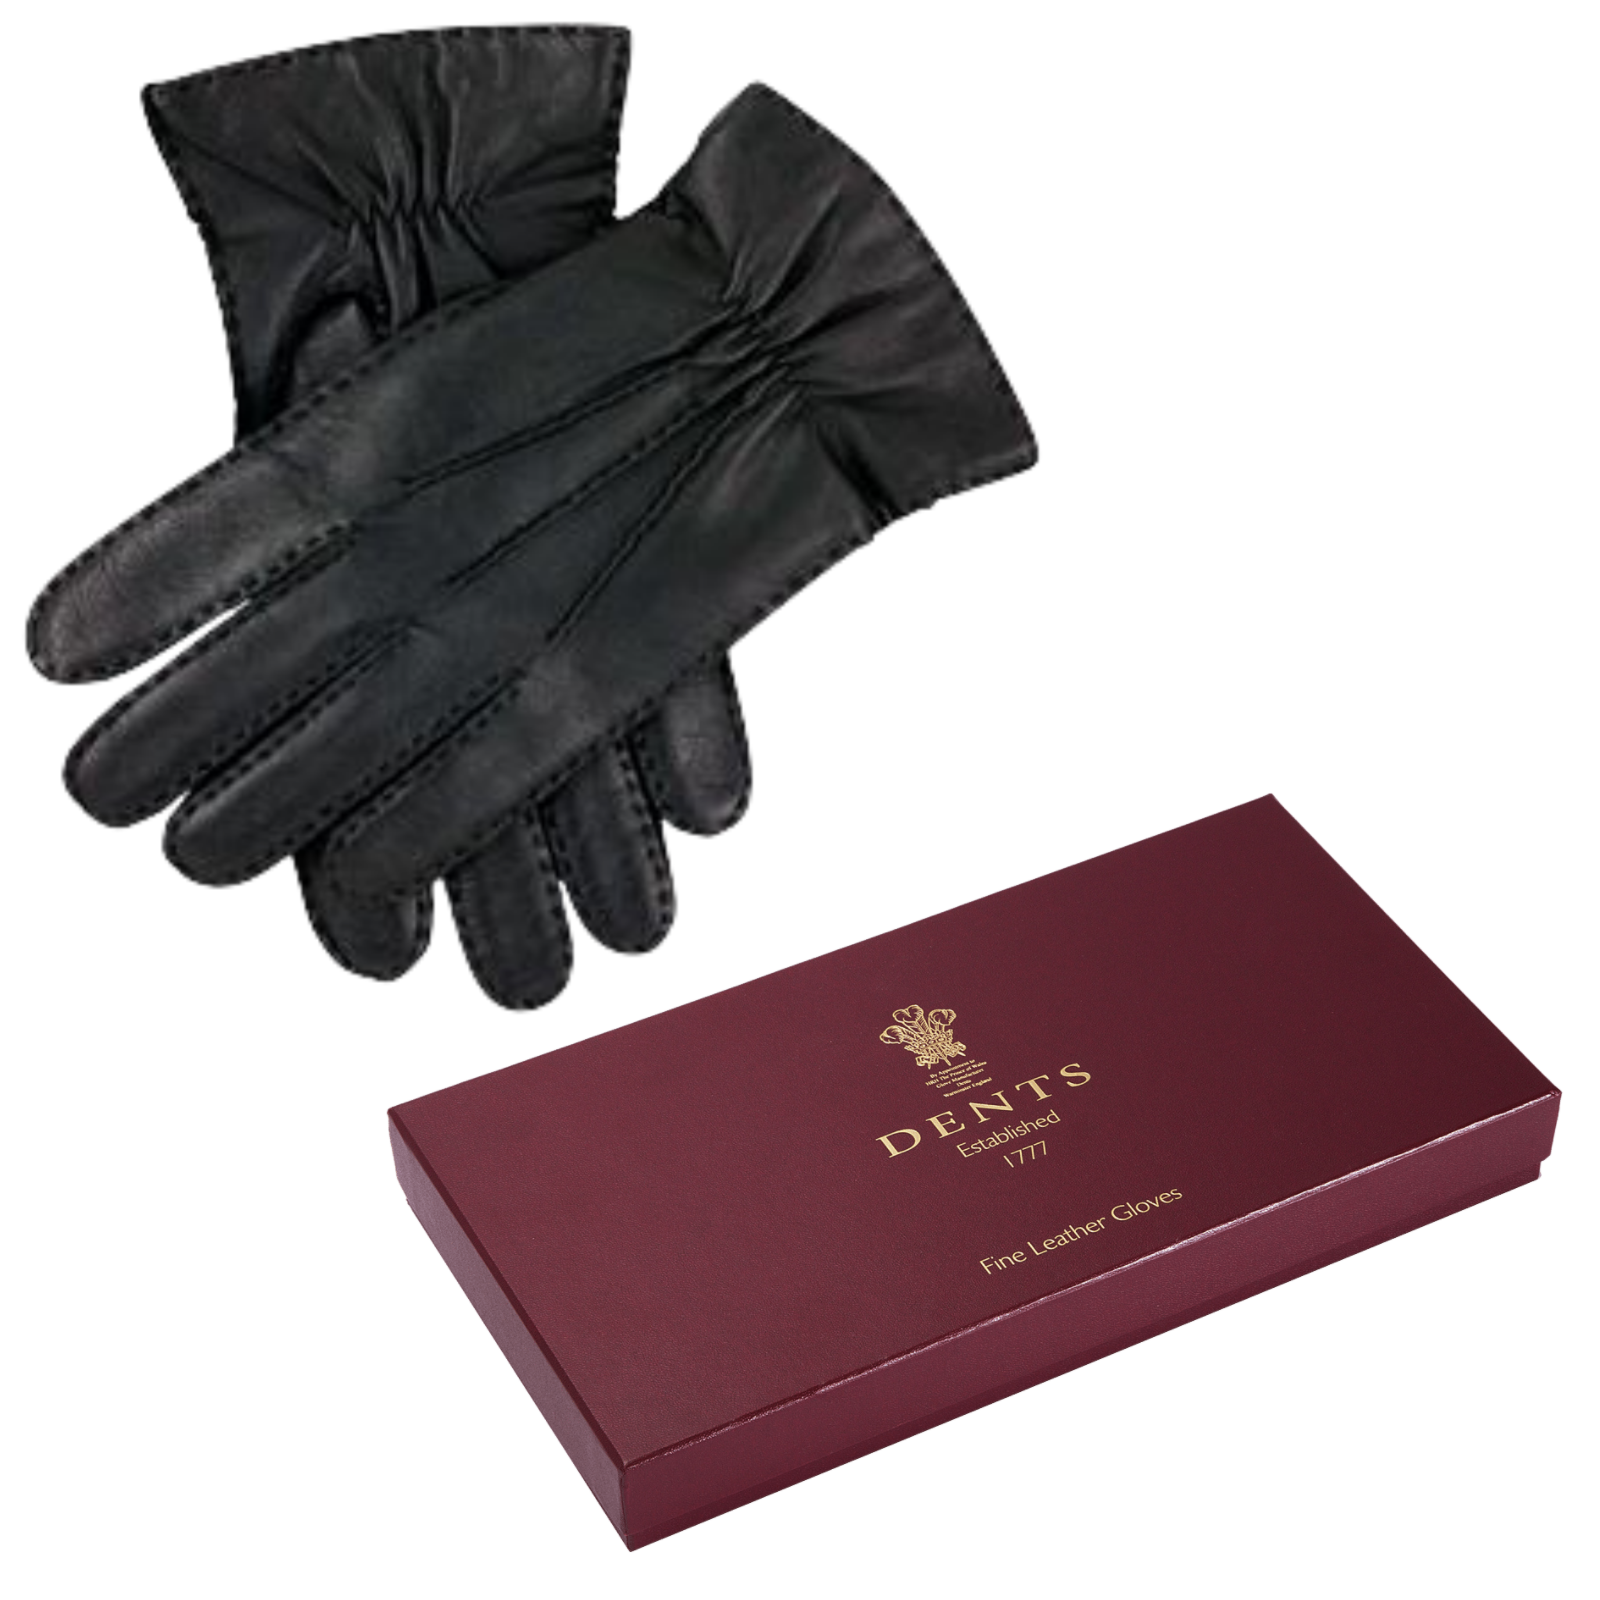 938a96902 h m s Remaining. DENTS Men's Premium Kangaroo Leather Cashmere Lined Gloves  Winter Gift - Black